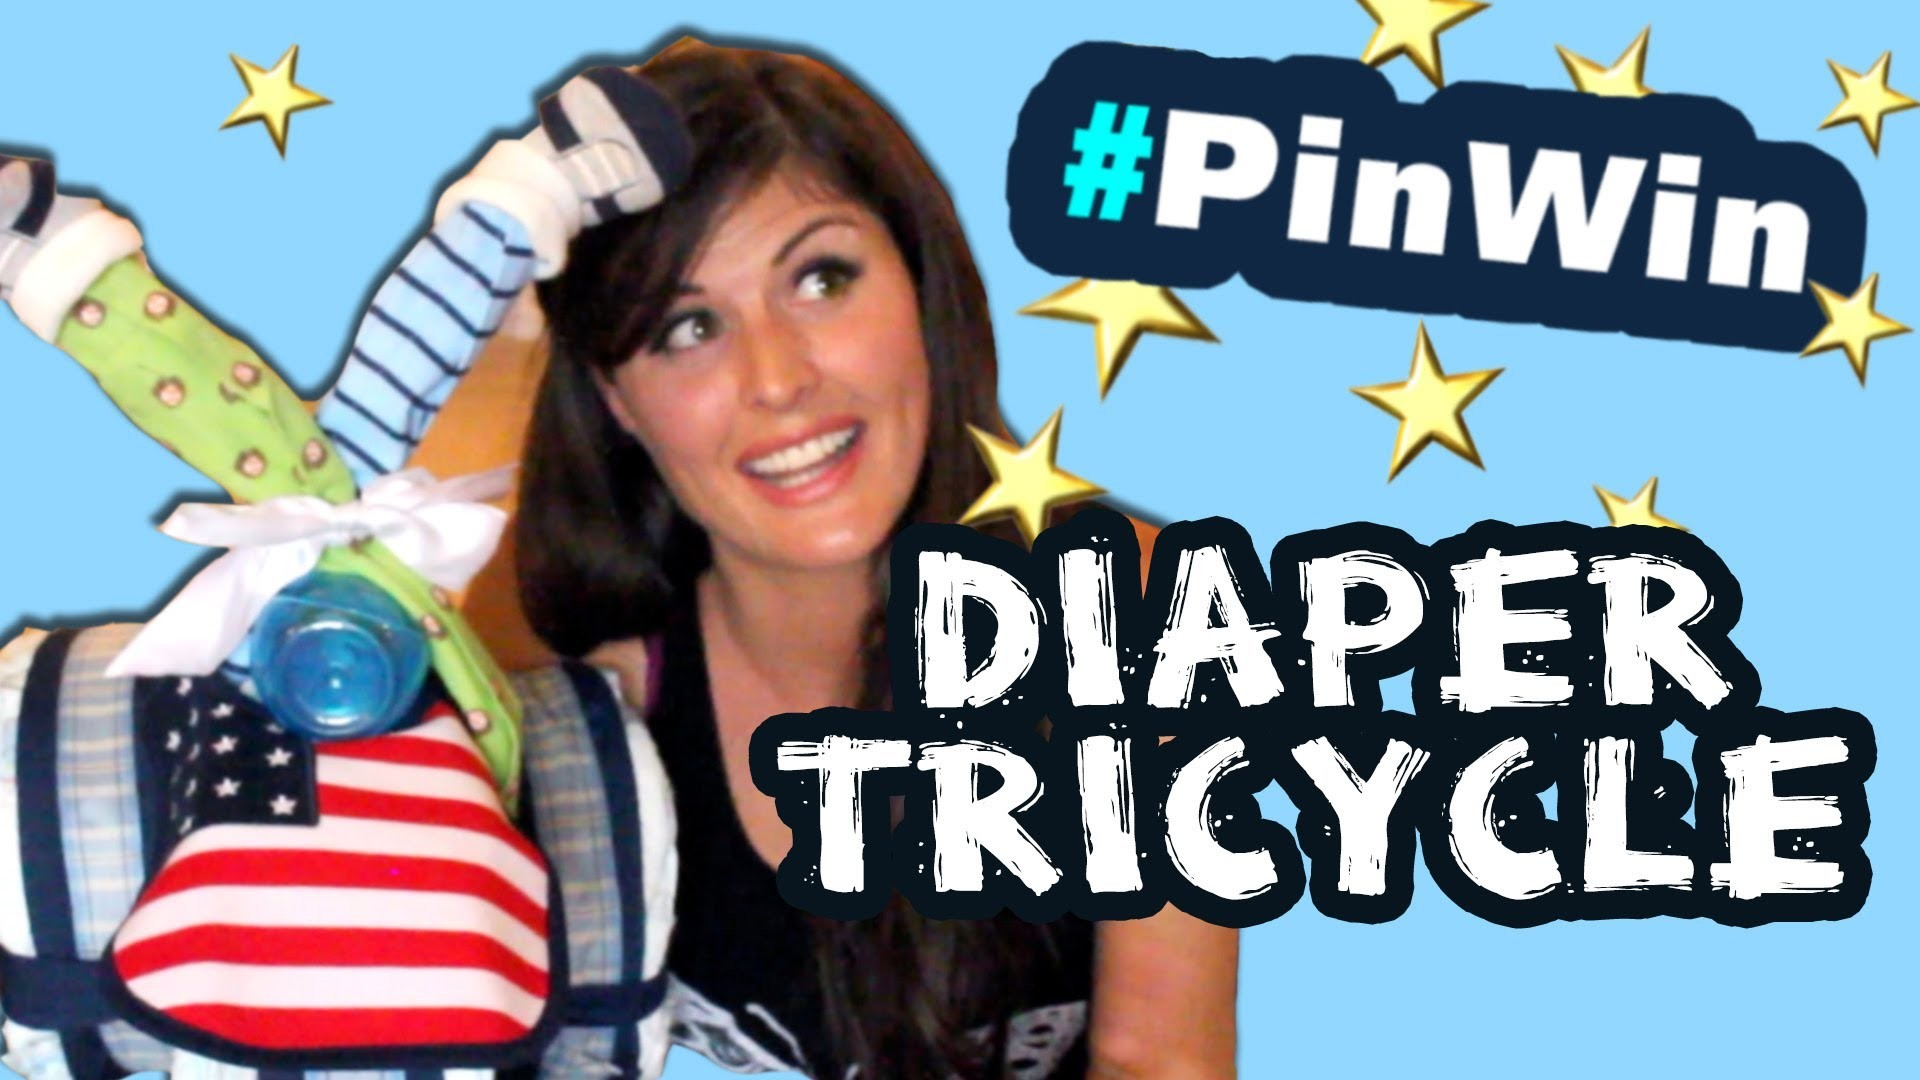 How to Make a Diaper Tricycle Baby Shower Gift #PinWin!